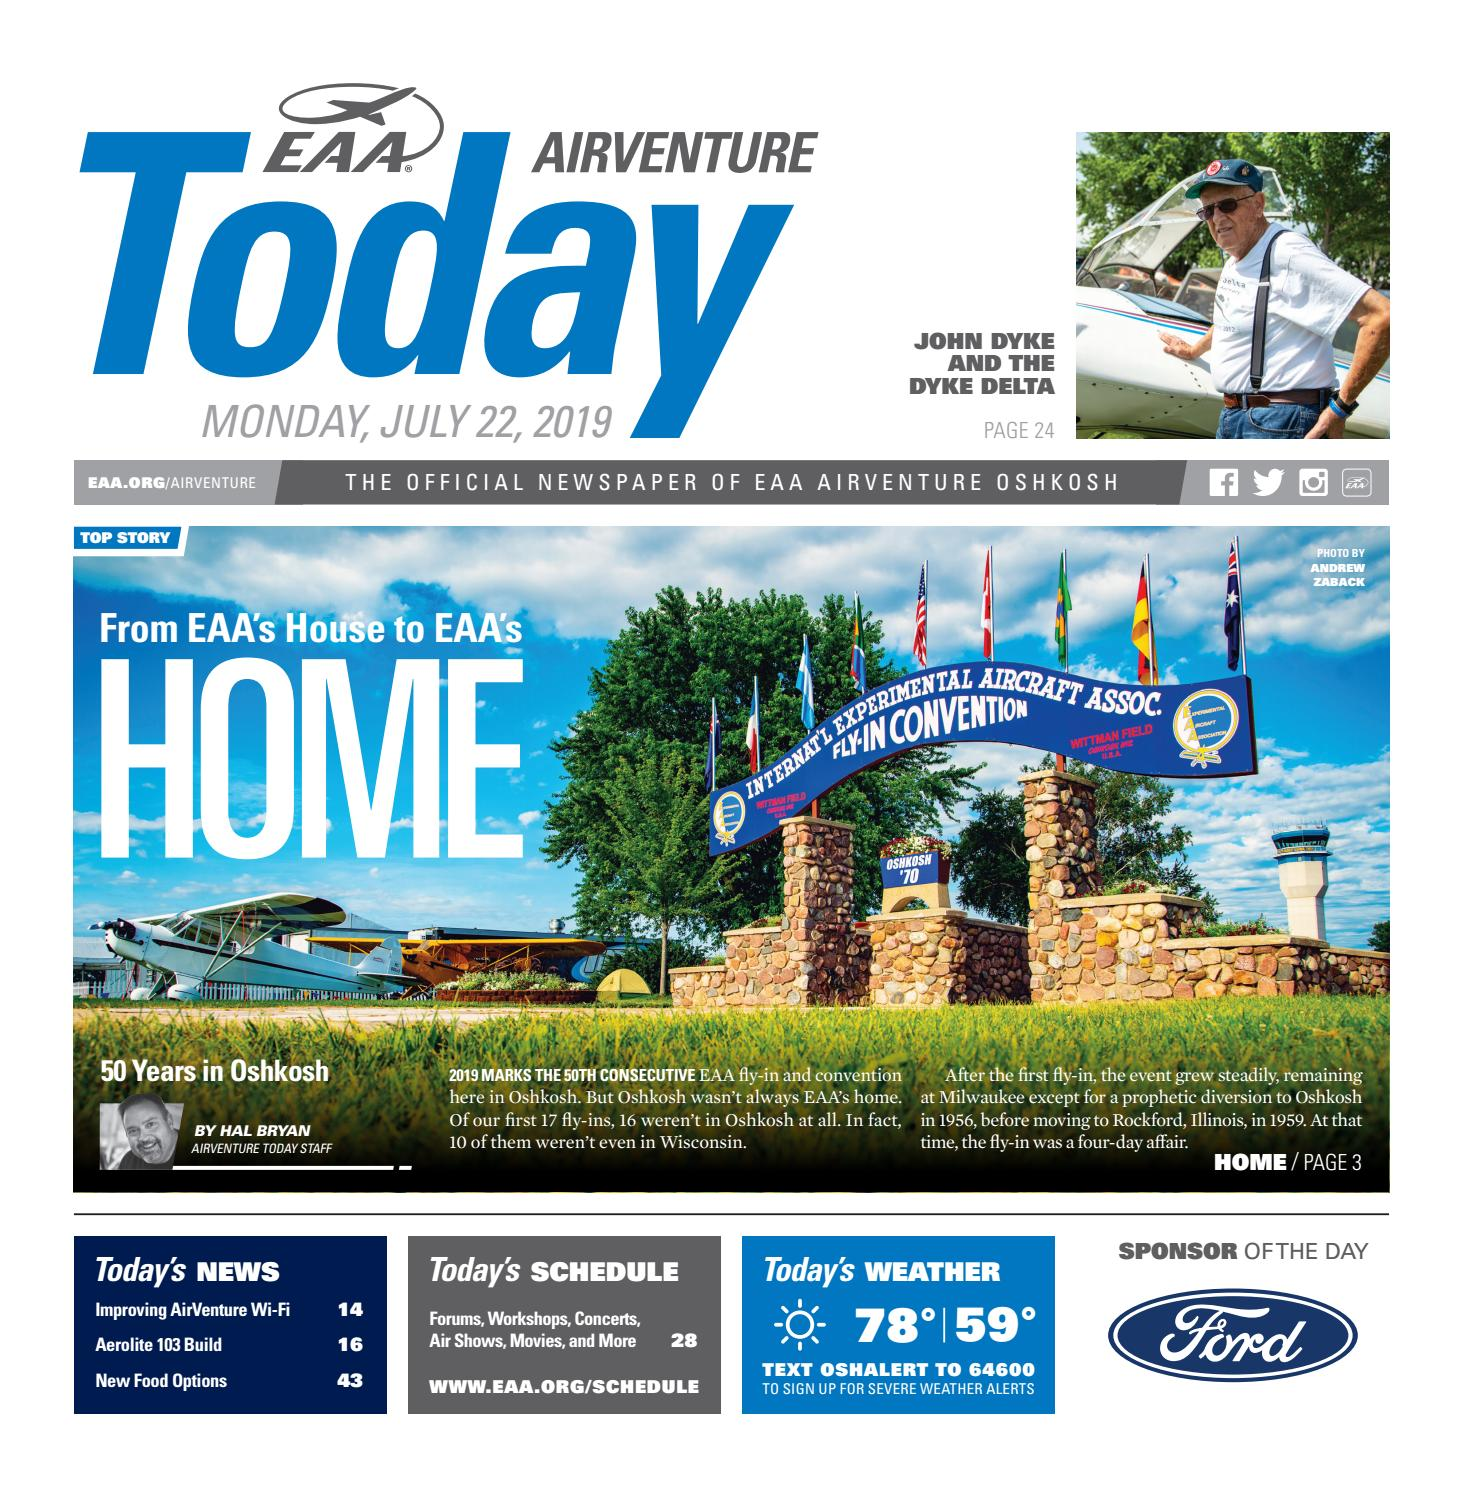 EAA AirVenture Today - Monday, July 22, 2019 by EAA: Experimental